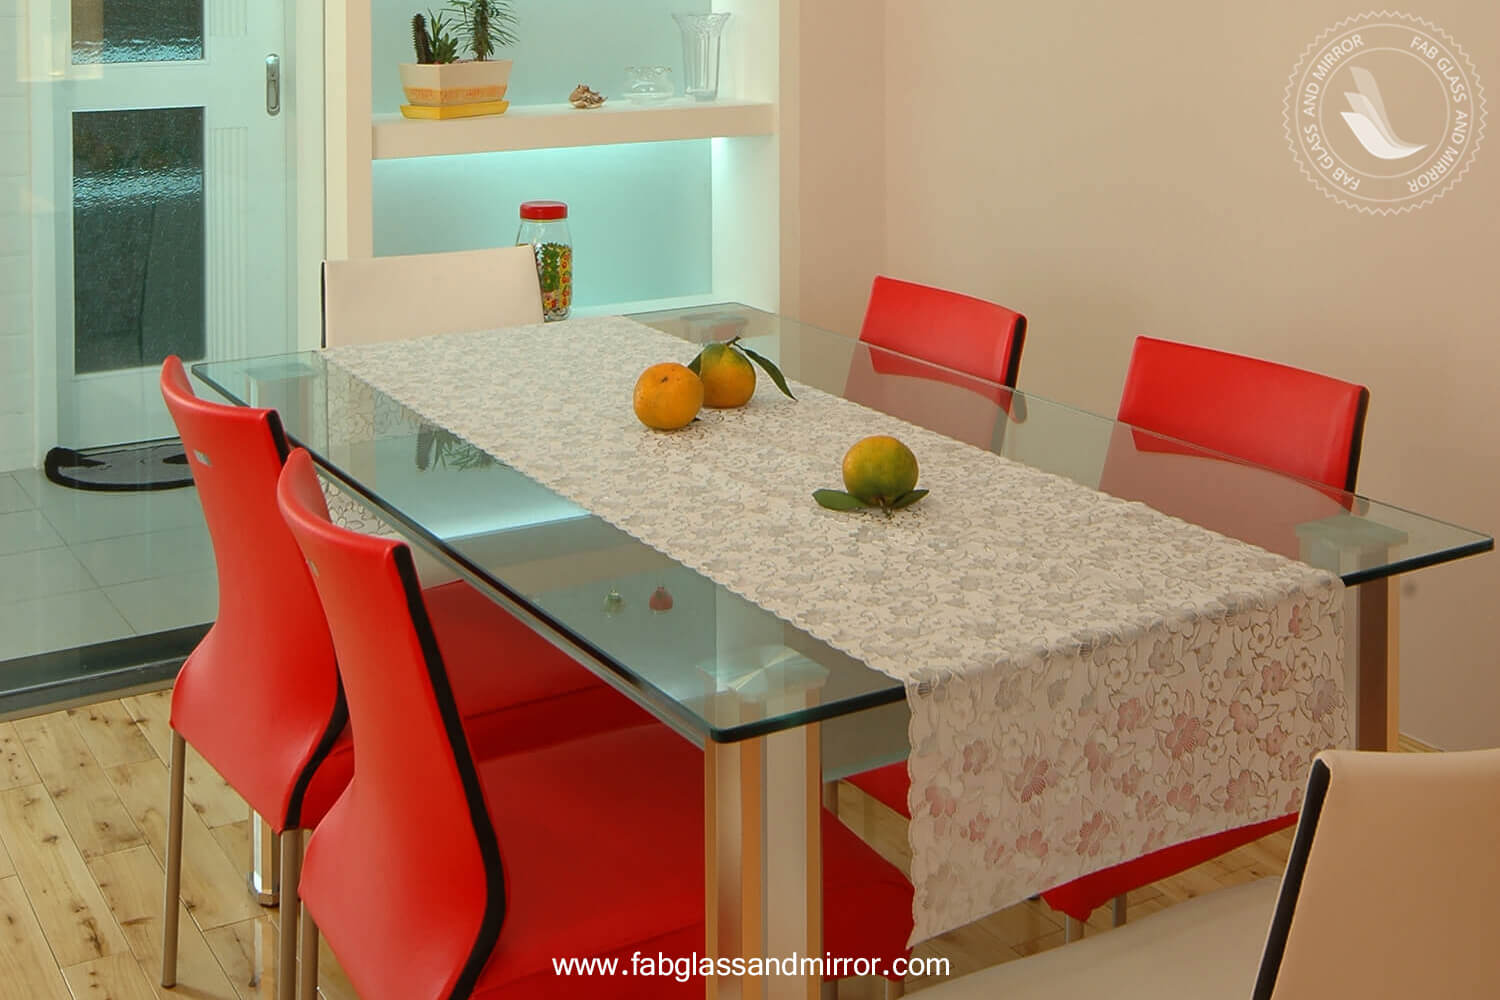 1. Select a perfect dining table